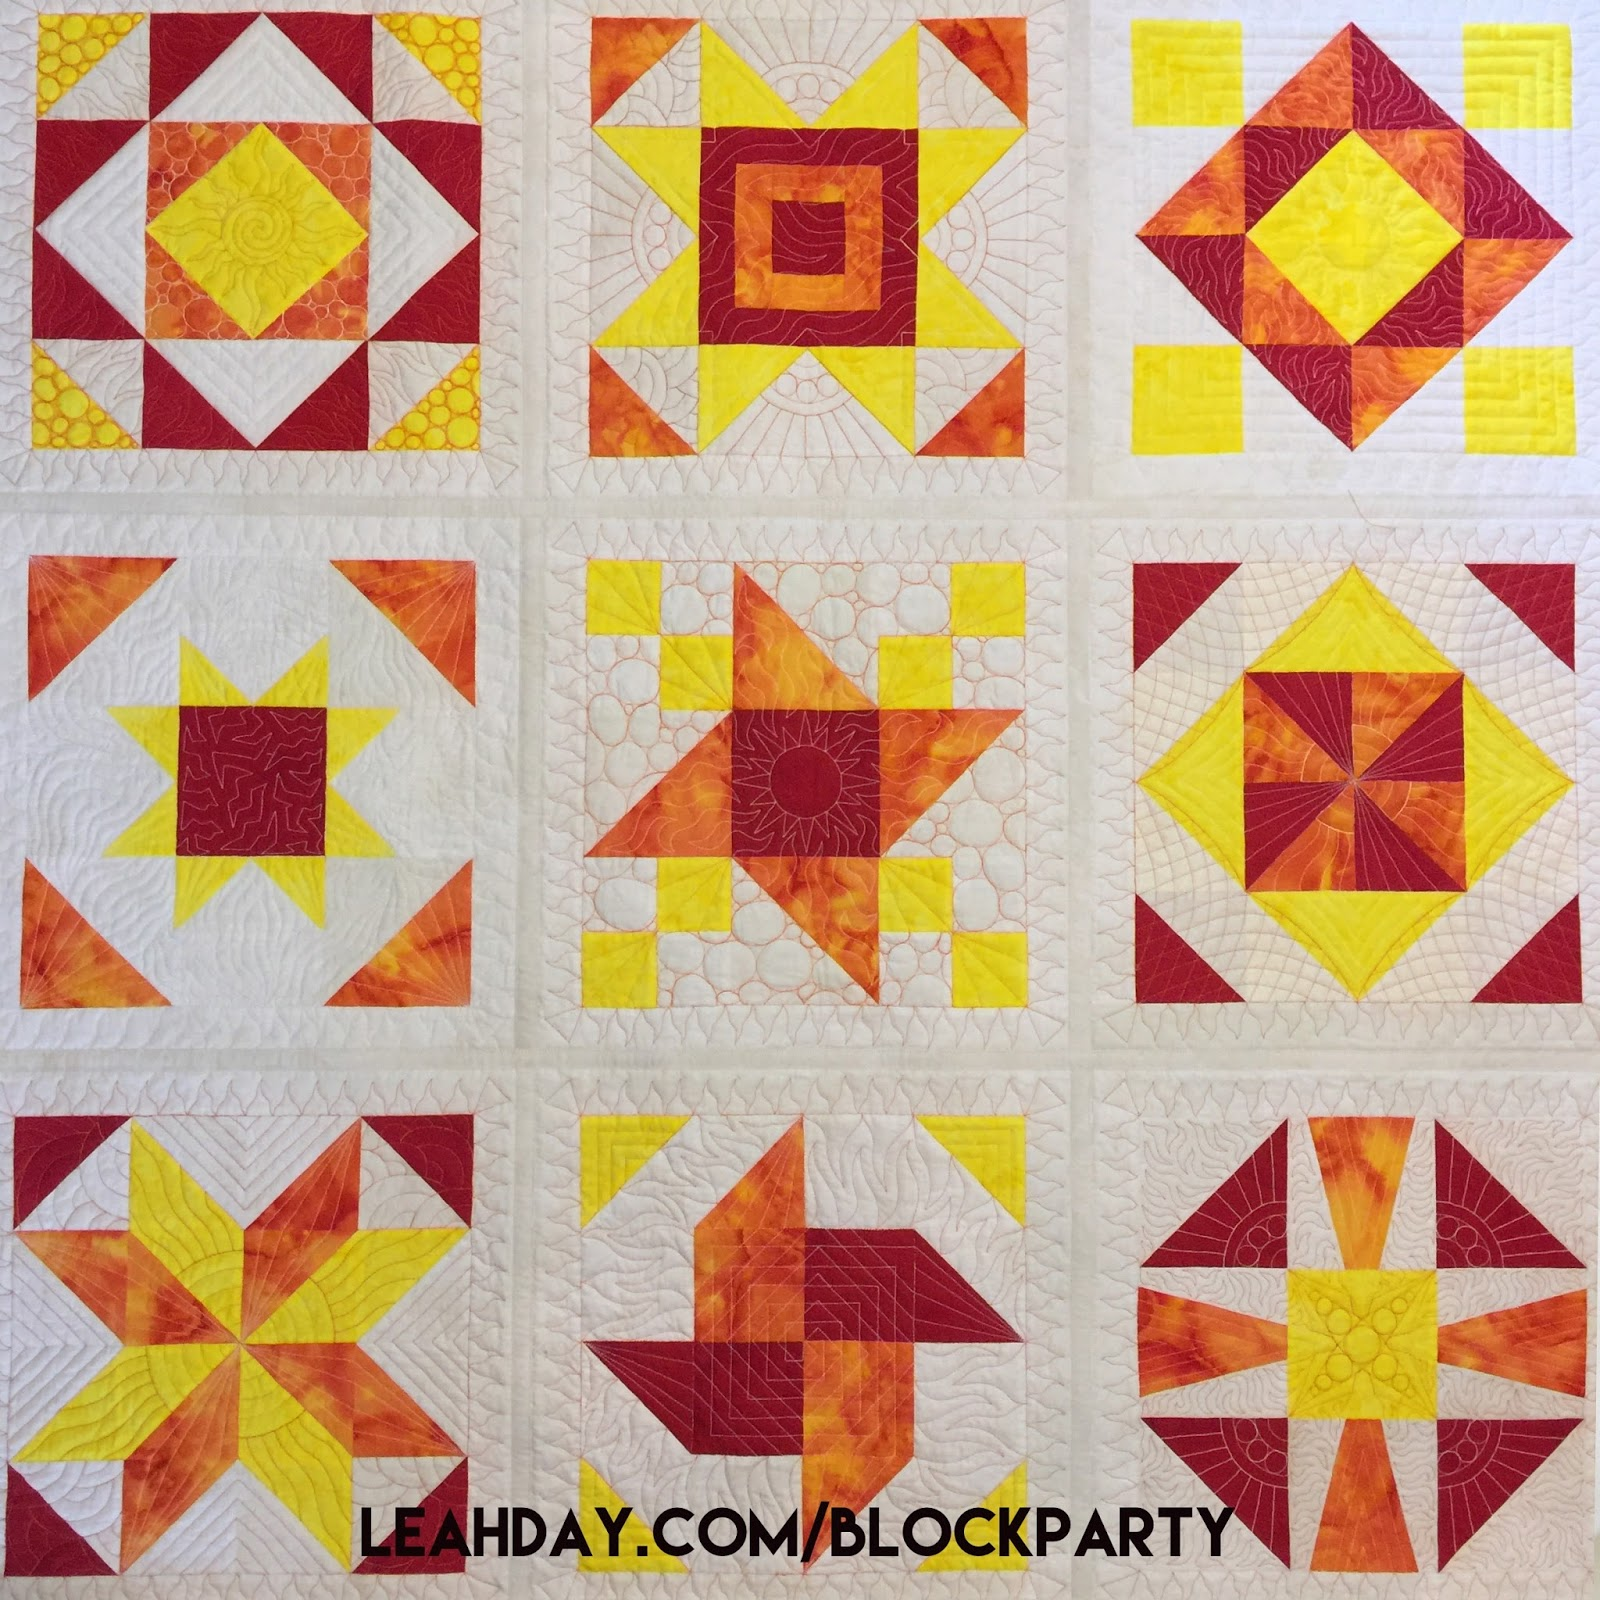 Free Motion Quilting Patterns For Blocks : The Free Motion Quilting Project: How to Quilt a Star Crossed Block